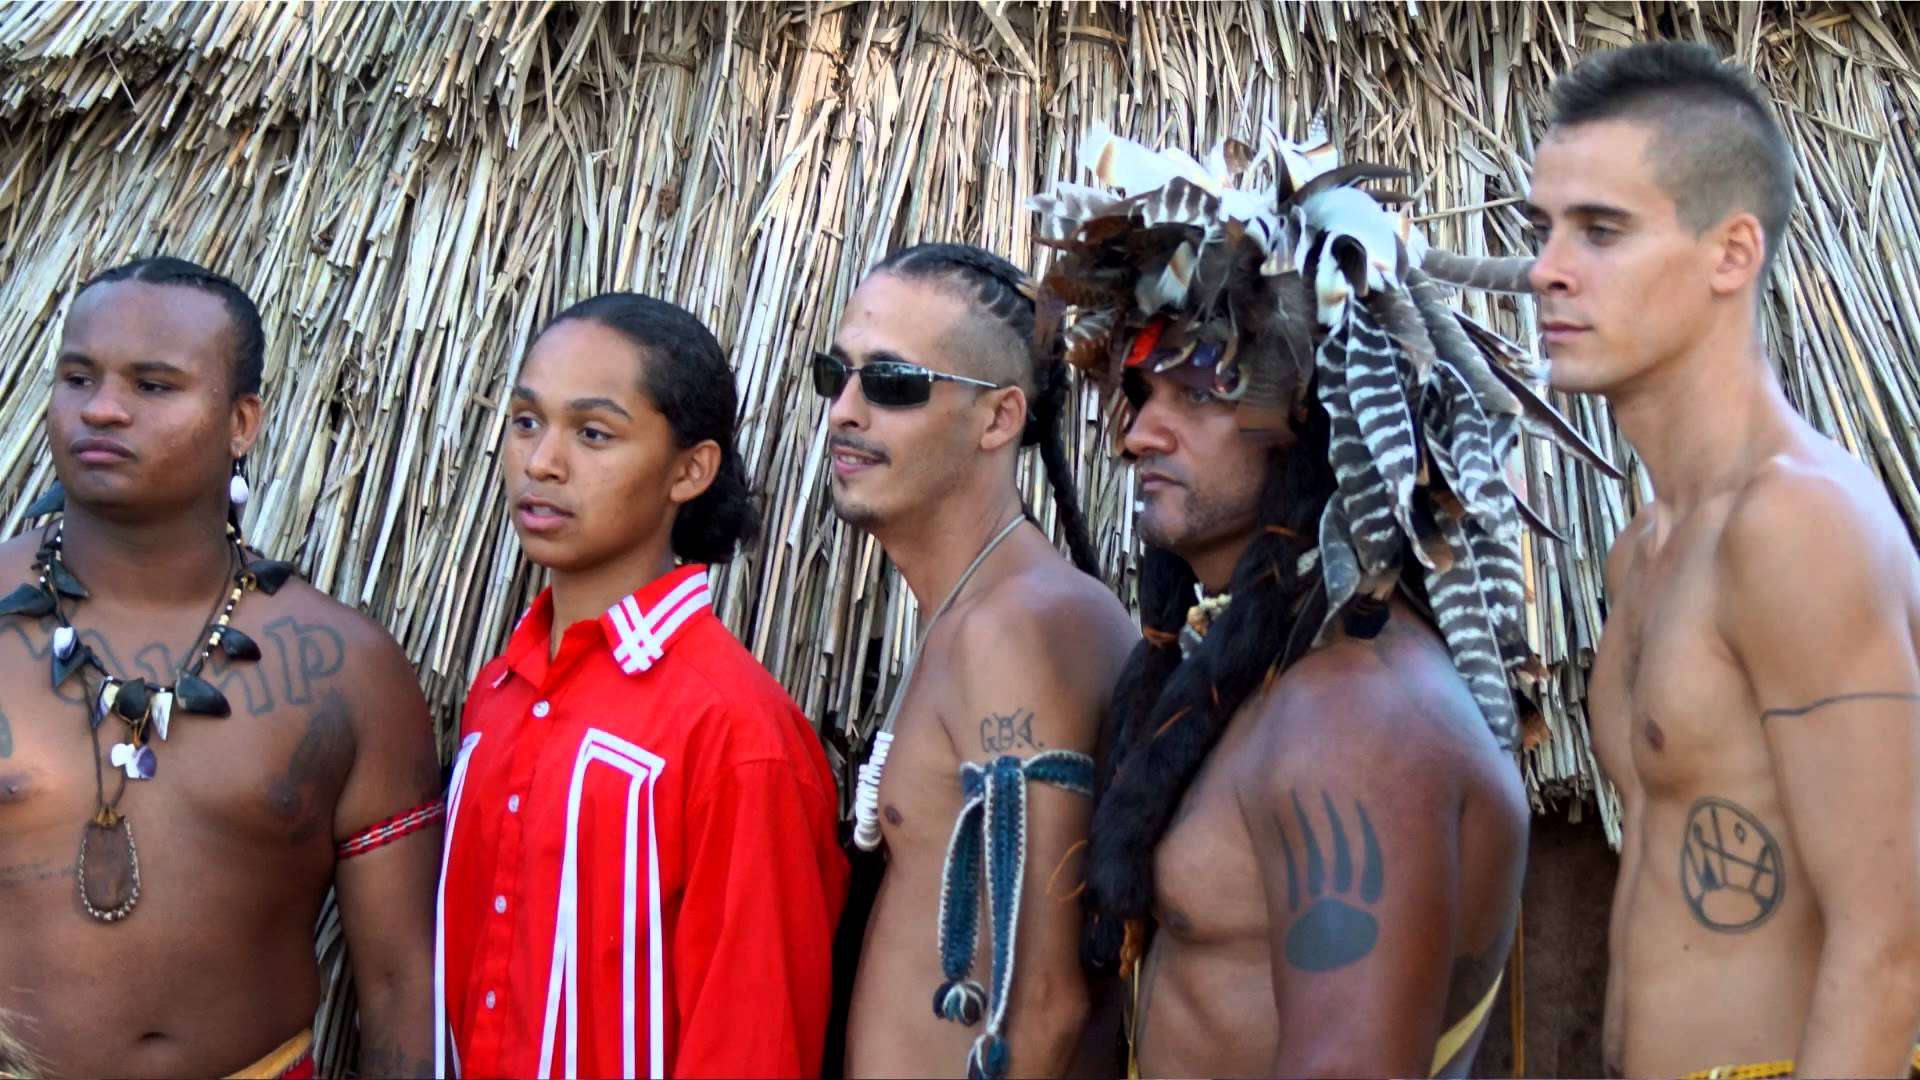 mattaponi guys (indians) of virginia sensitive kinds of guys who made anthropologically-neutral chief walt brown, upper mattaponi chief kenneth adams, governor.